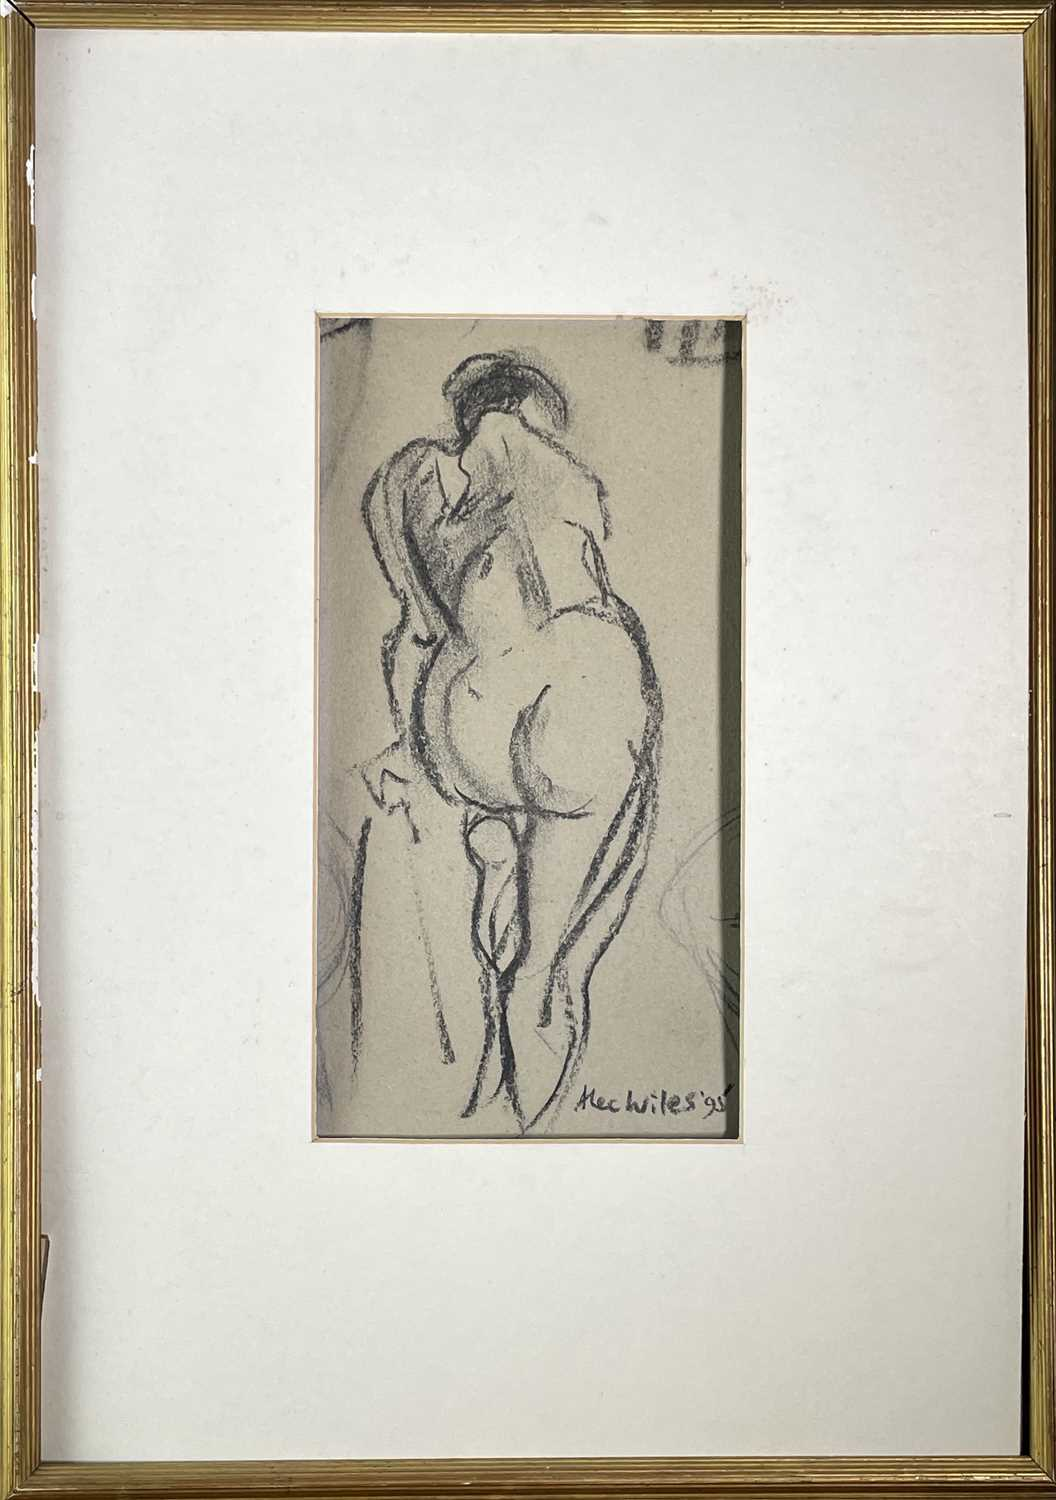 Alec WILES (1924) Various works including prints - Image 4 of 30